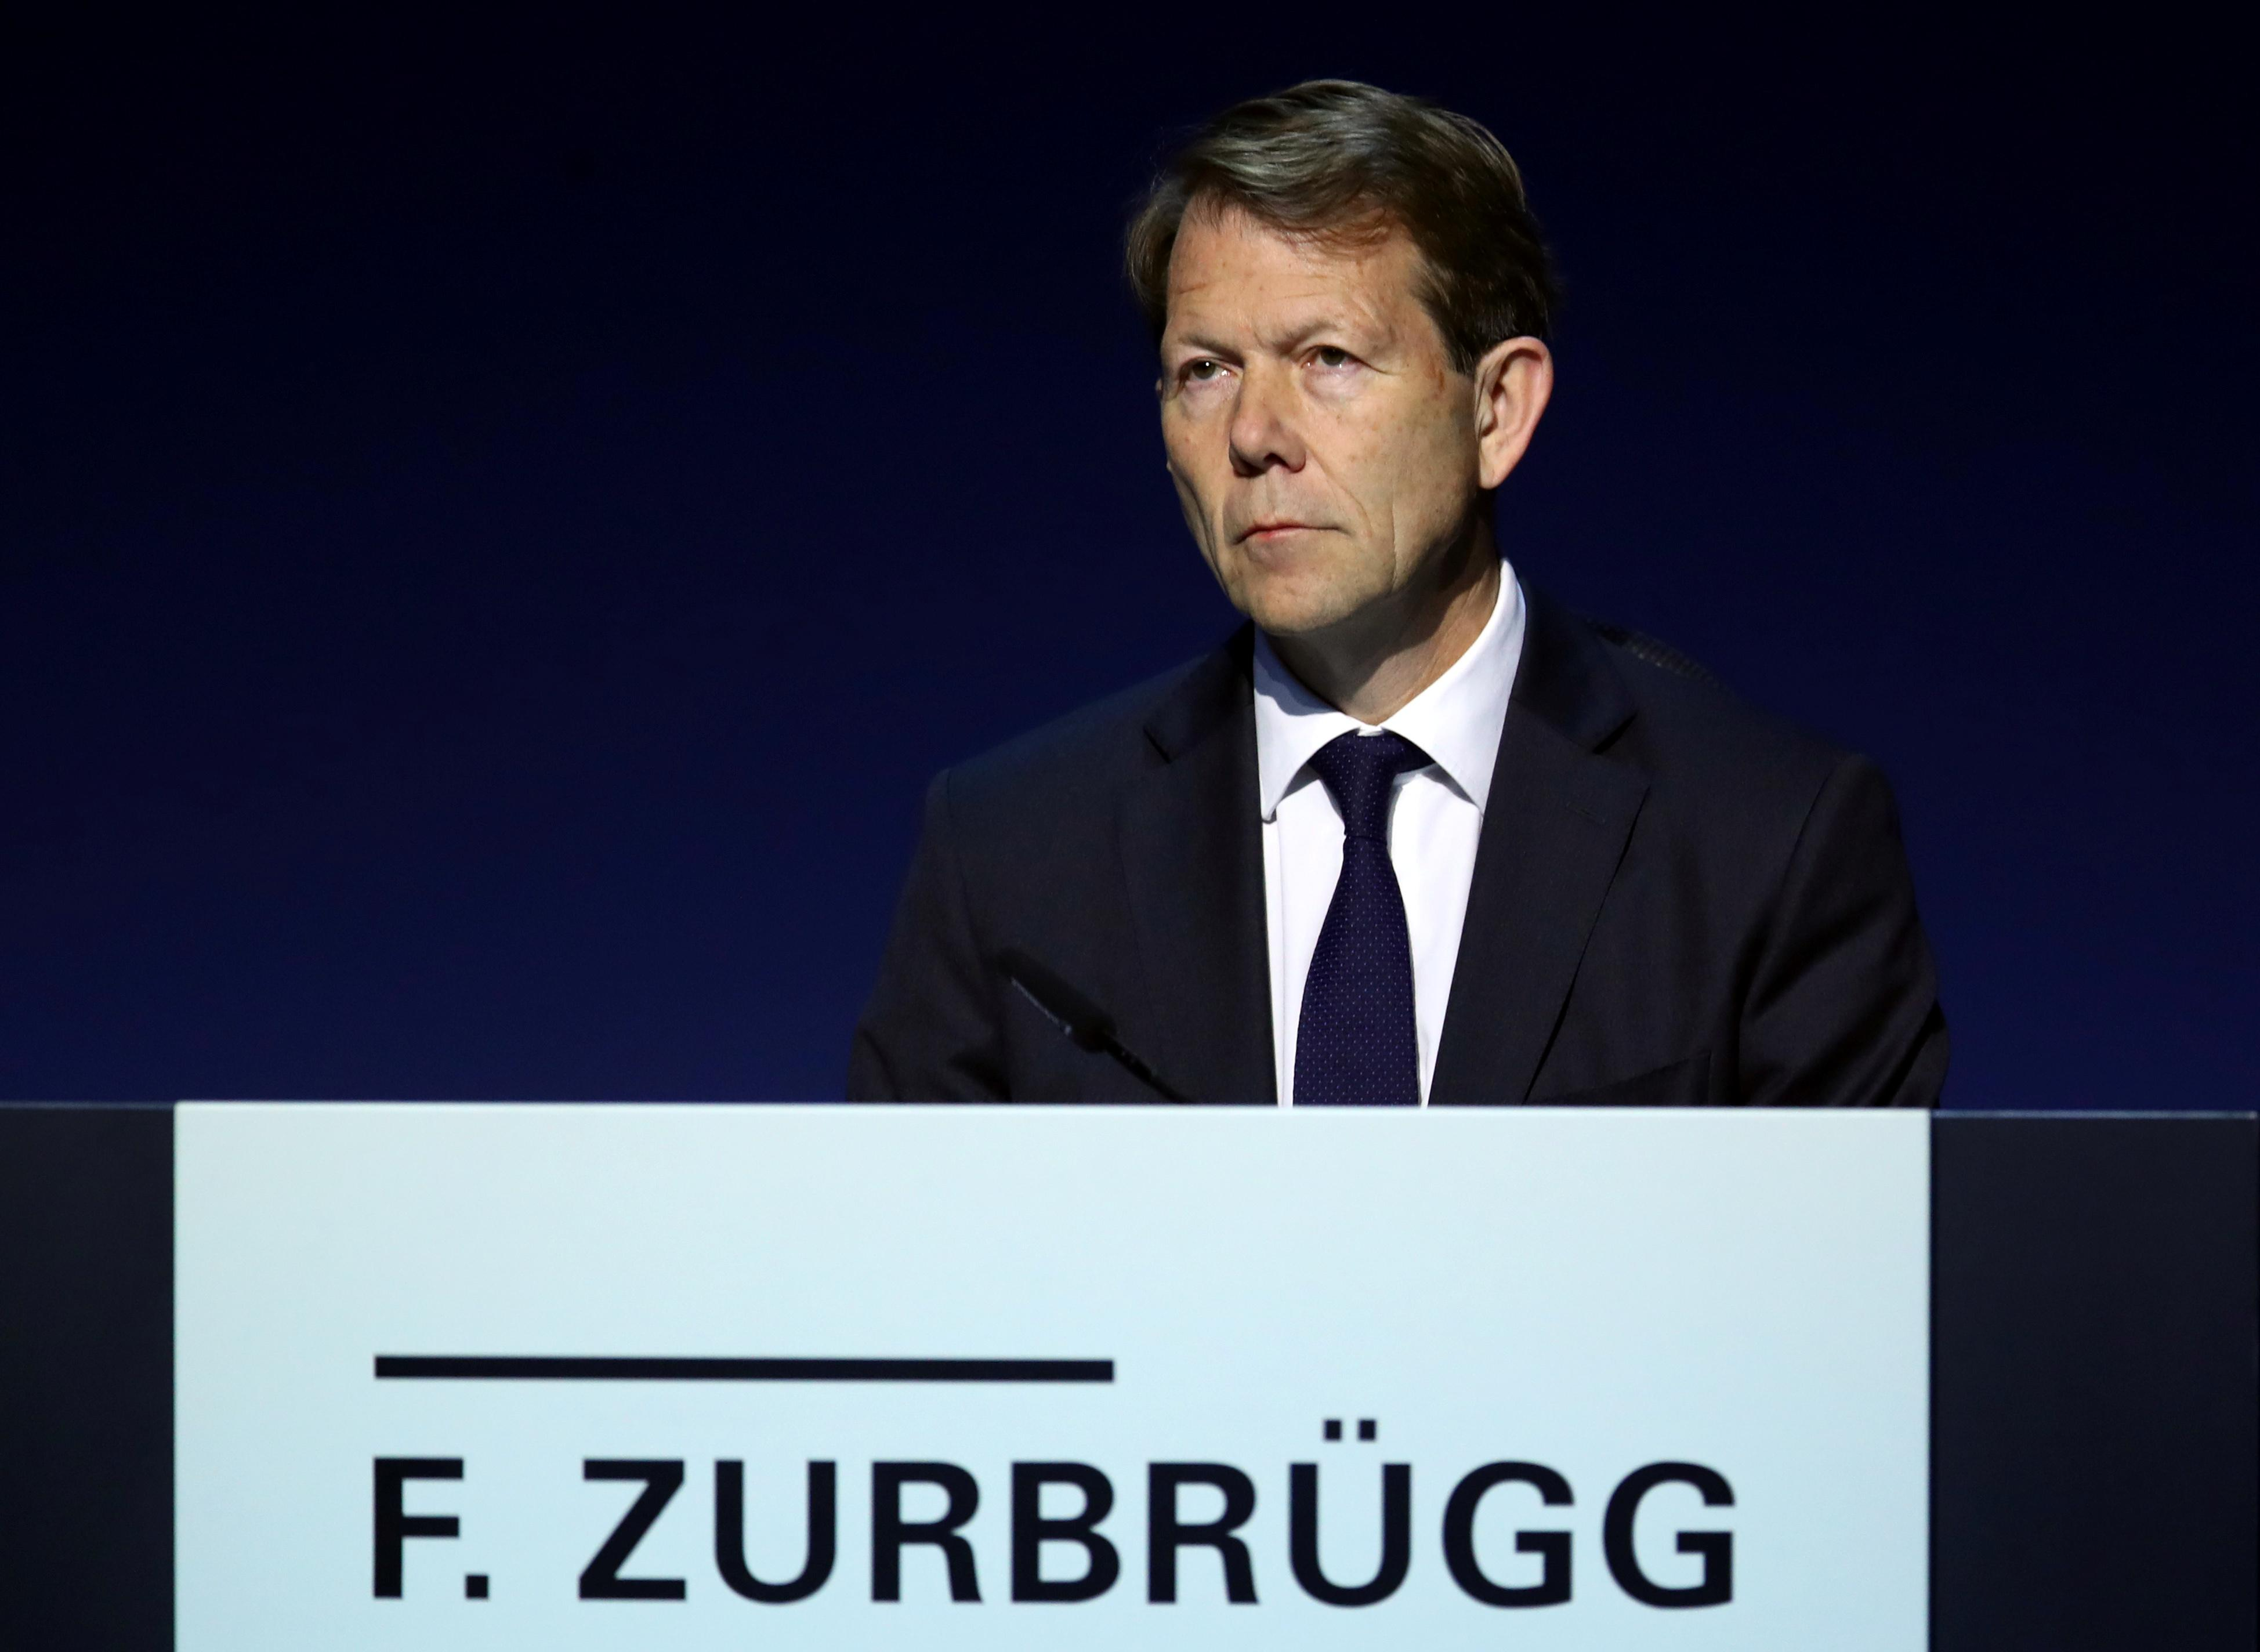 Swiss National Bank sticks to 'boring' expansionary stance - Zurbruegg